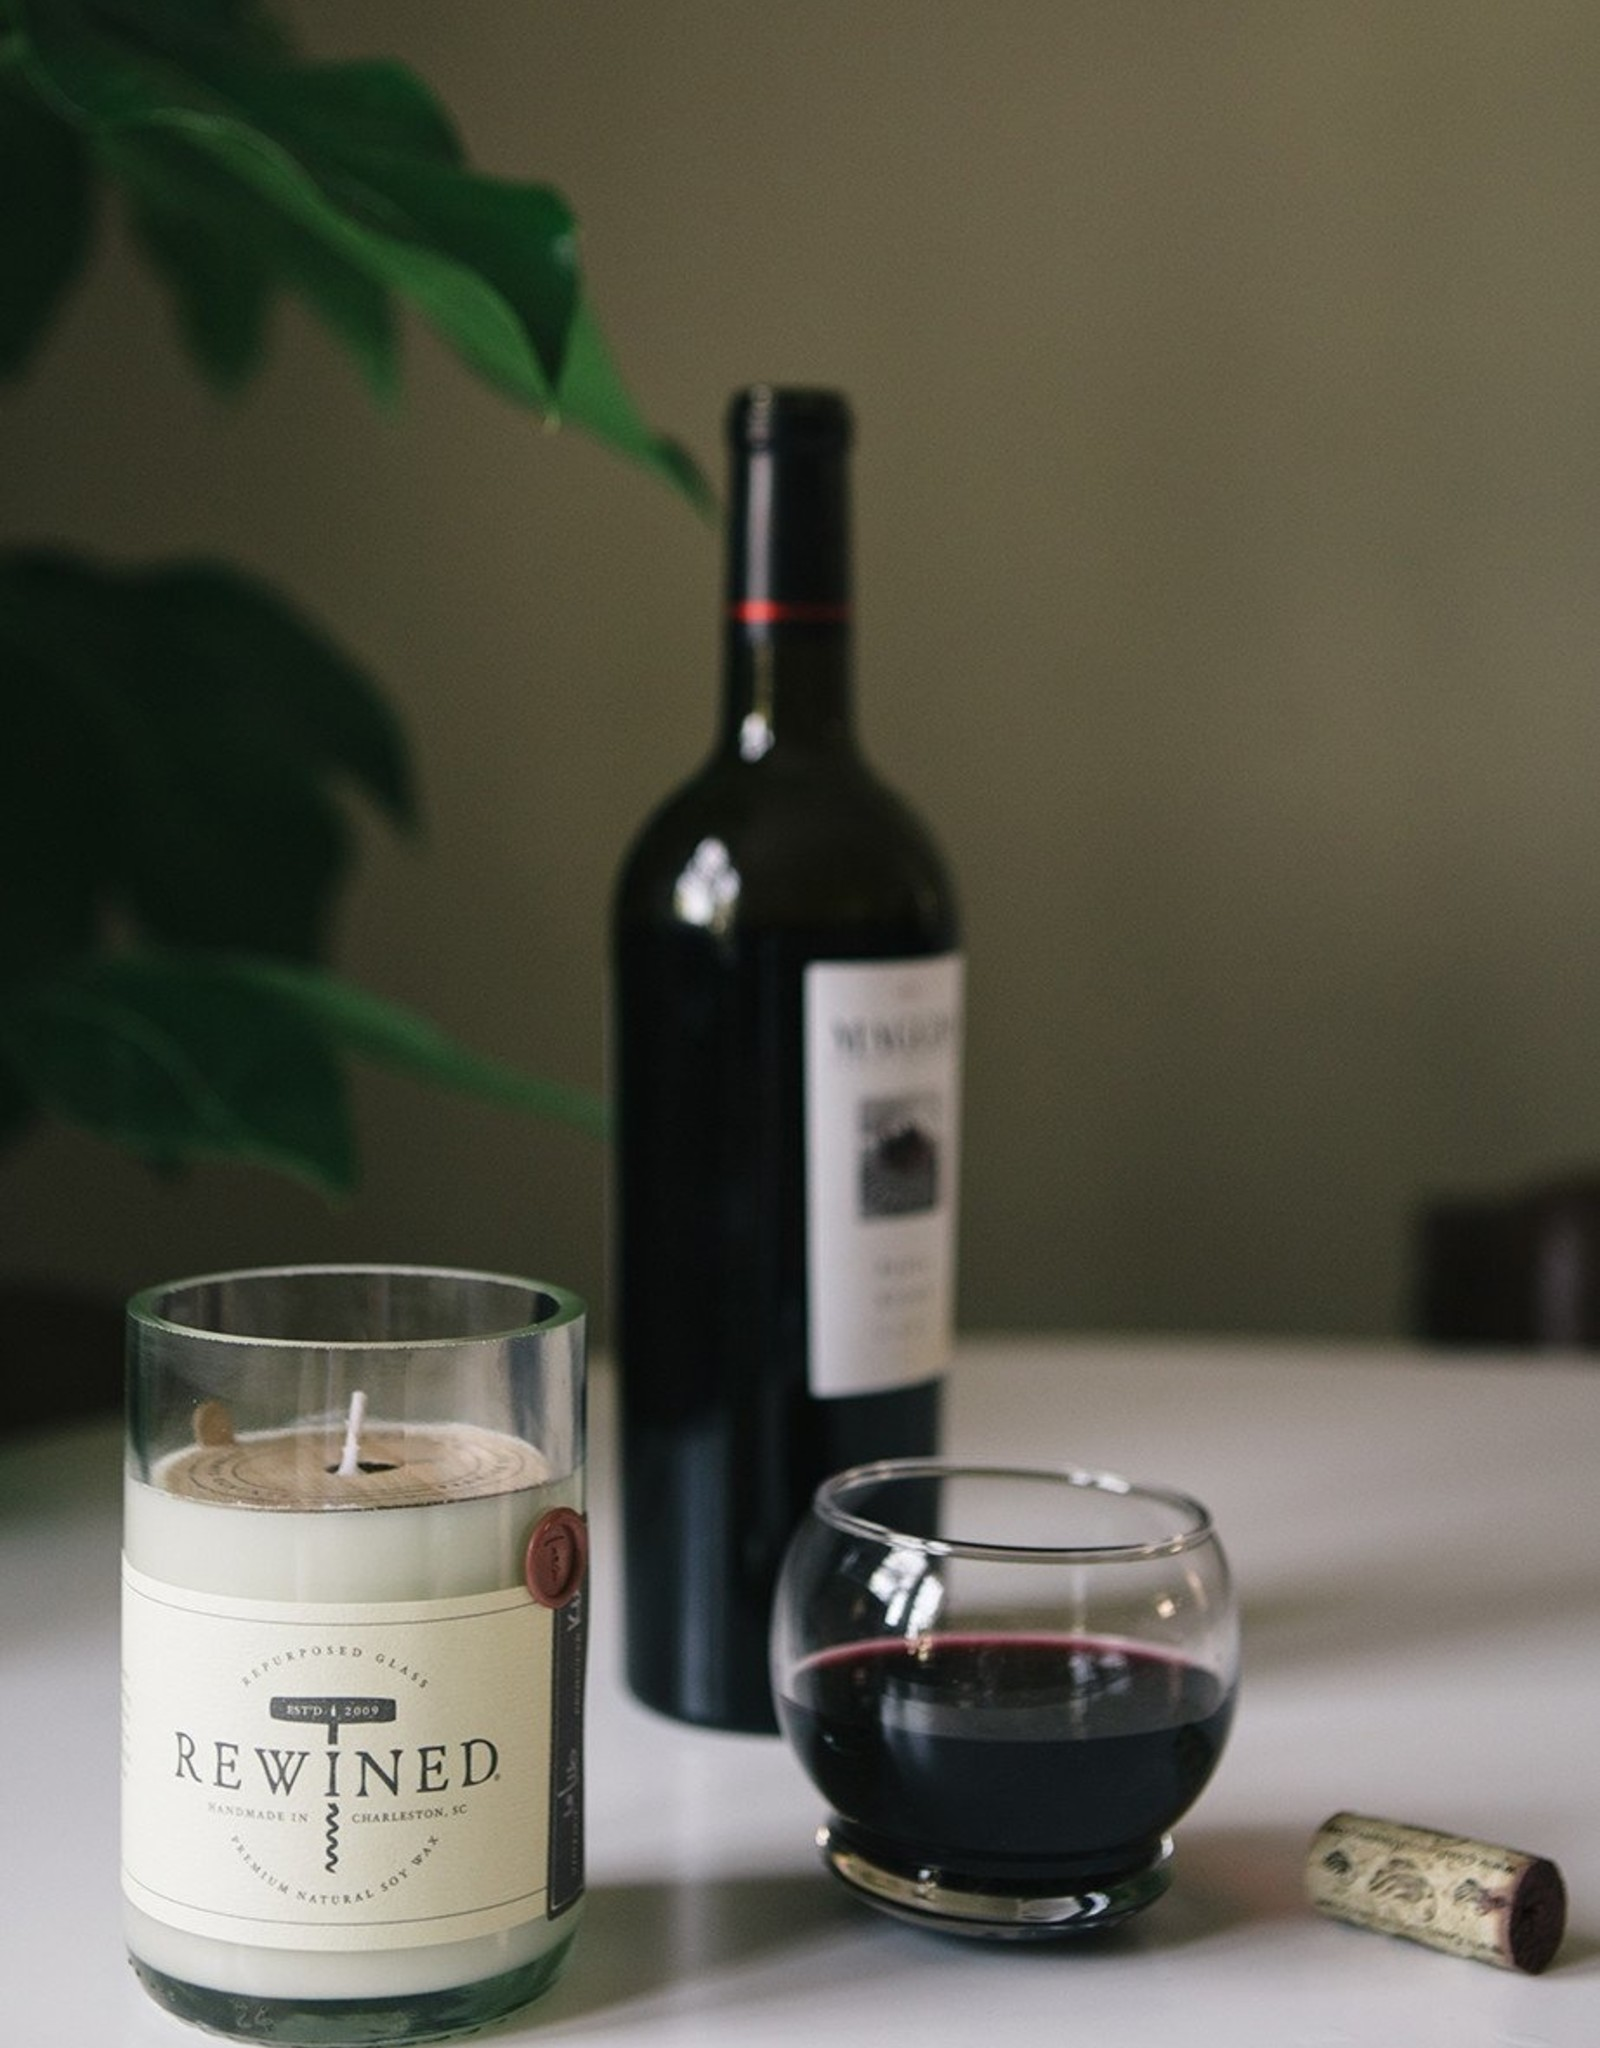 Rewined Rewined - Zinfandel Candle